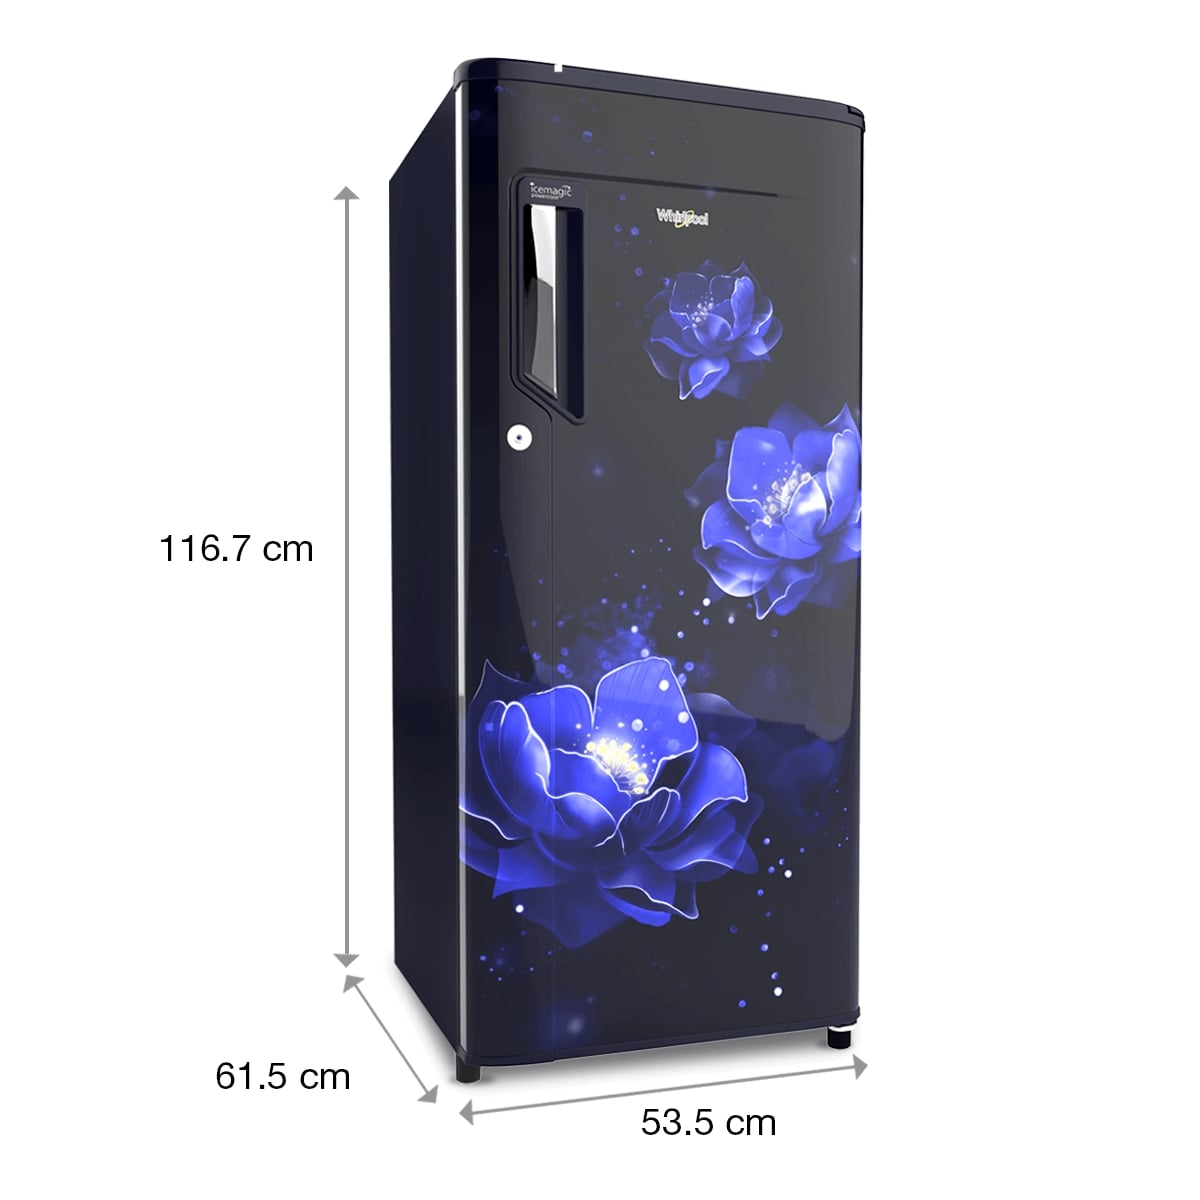 Whirlpool 185 Litres 2 Star Direct Cool Single Door Refrigerator (200 Icemagic Powercool PRM 2S, Sapphire ABYSS - 71609)